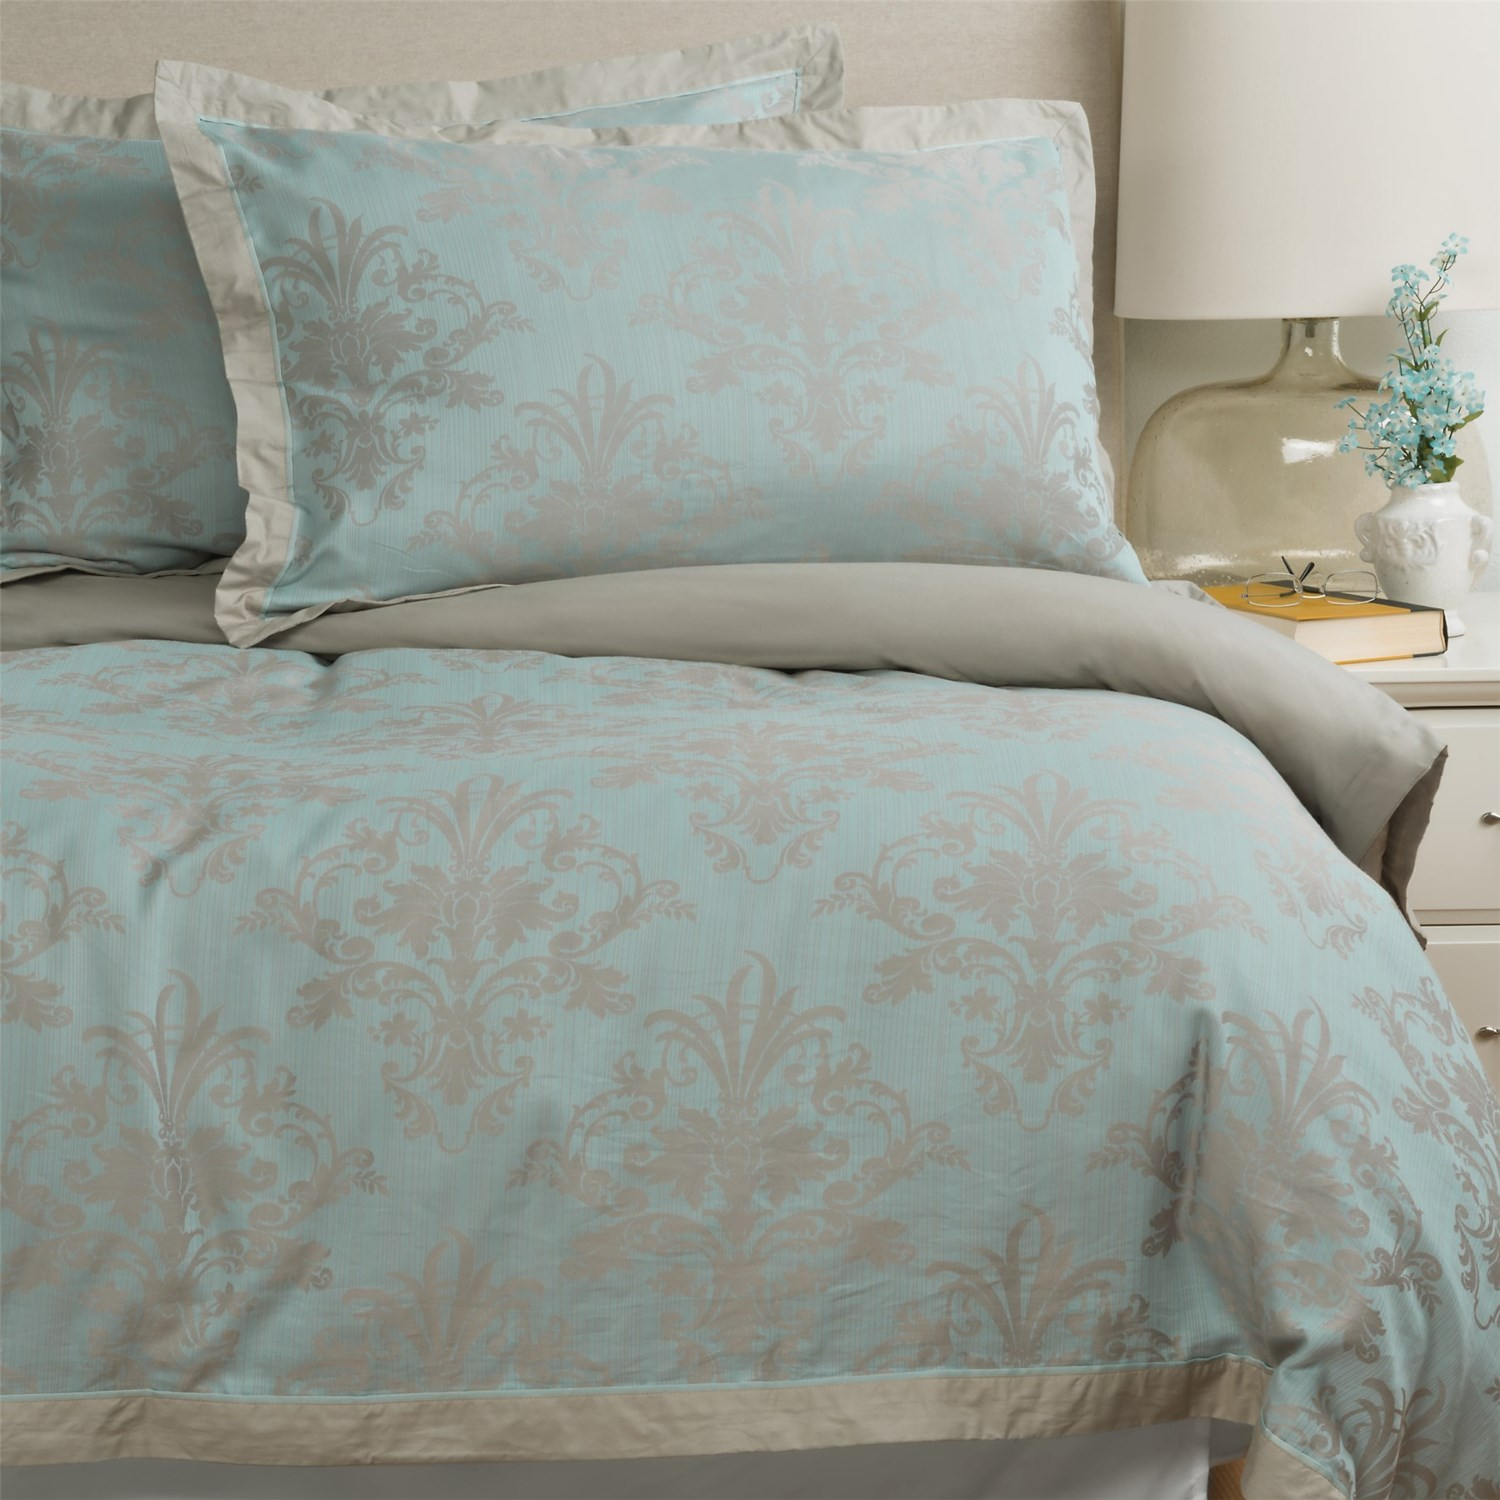 Christy Floral Damask Duvet Cover Queen 200 Tc Save 54